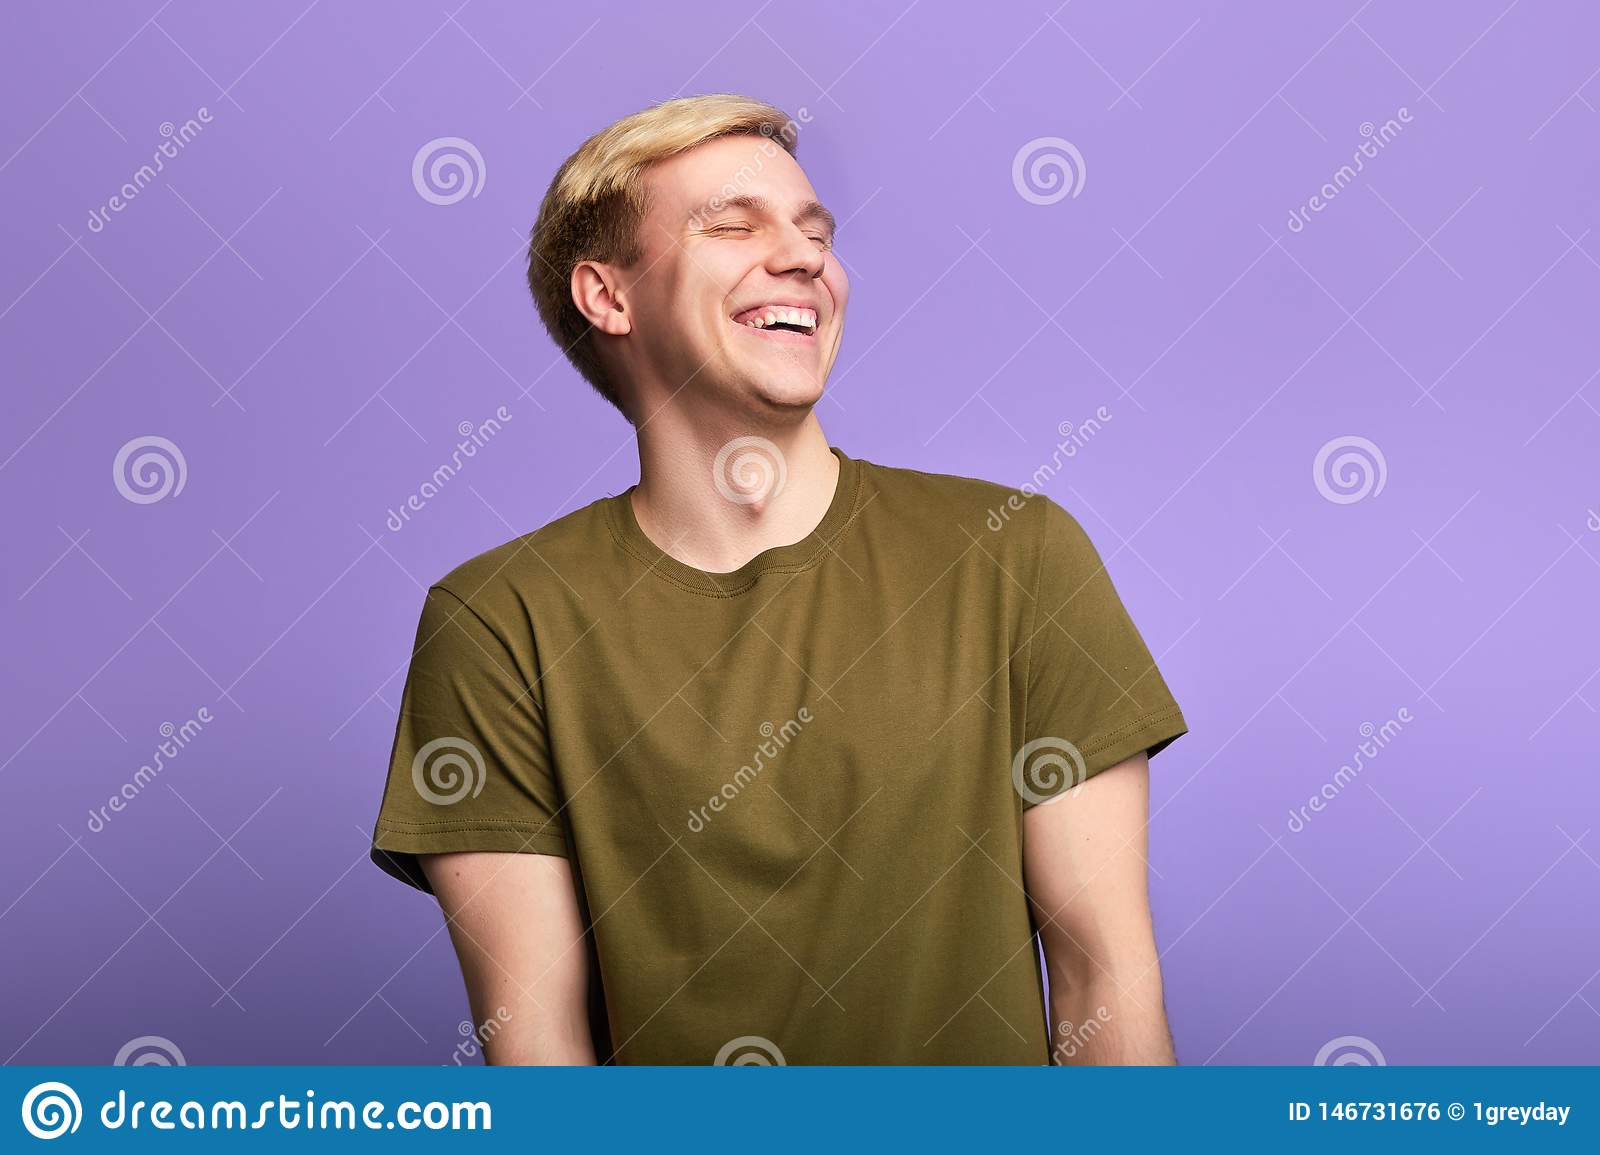 Cheerful positive man with closed eyes, laughs positively